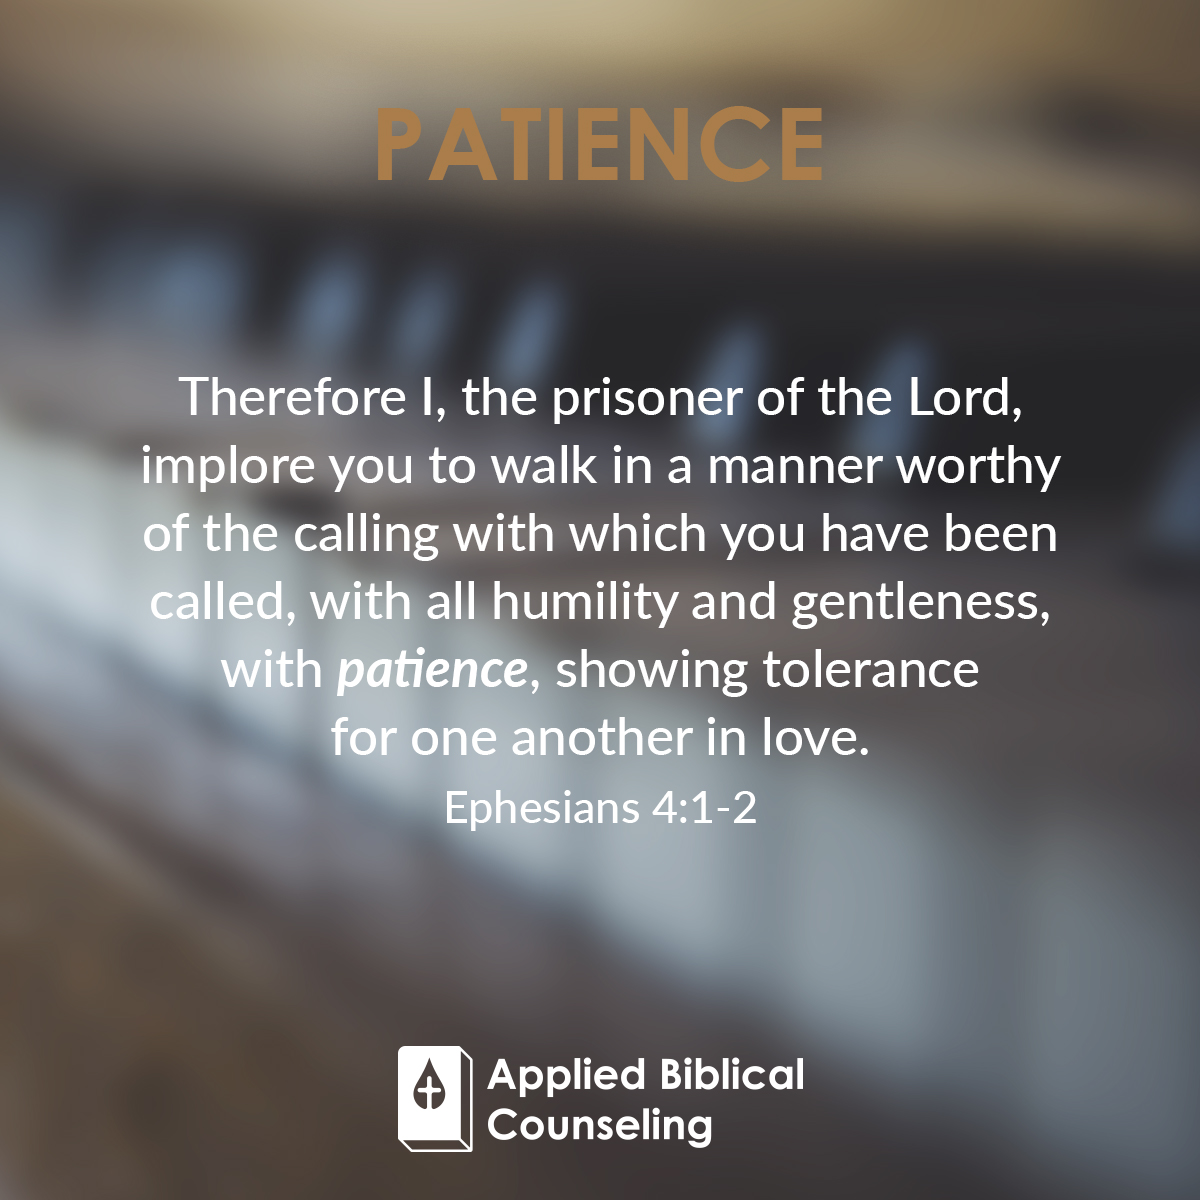 Applied Biblical Counseling Facebook w26 Patience 2